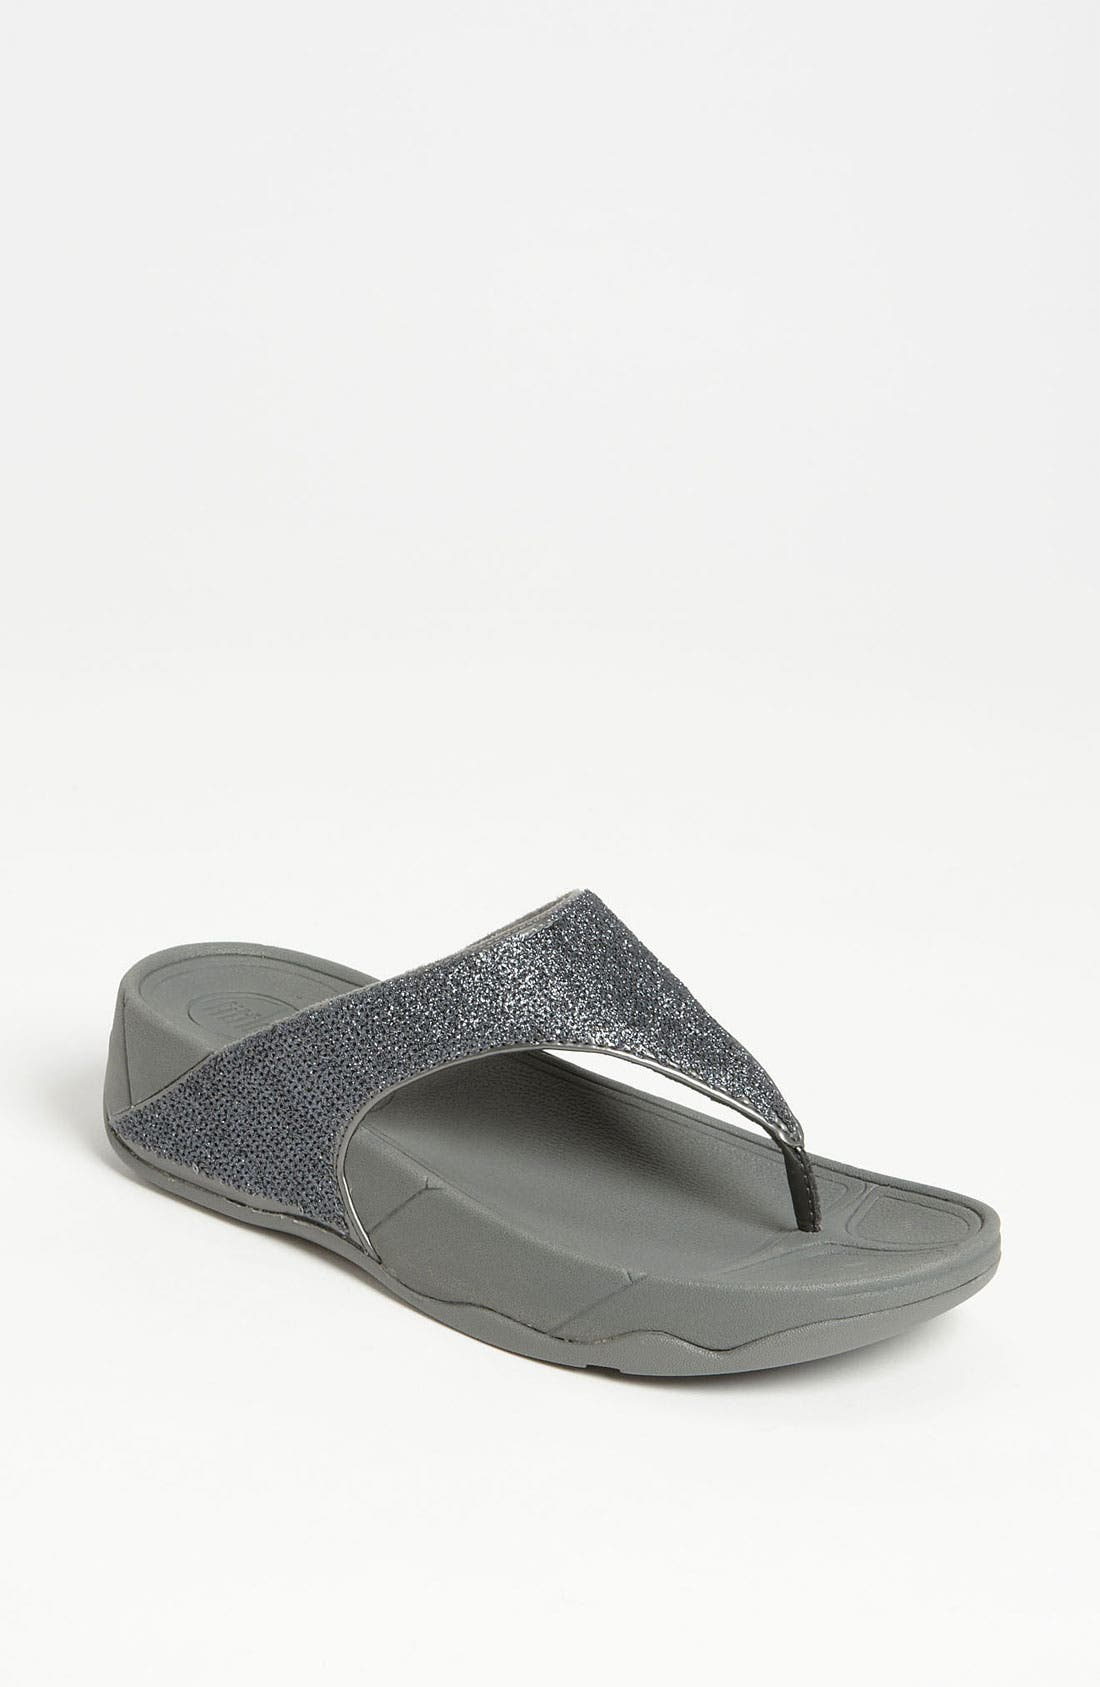 Main Image - FitFlop 'Astrid™' Sandal